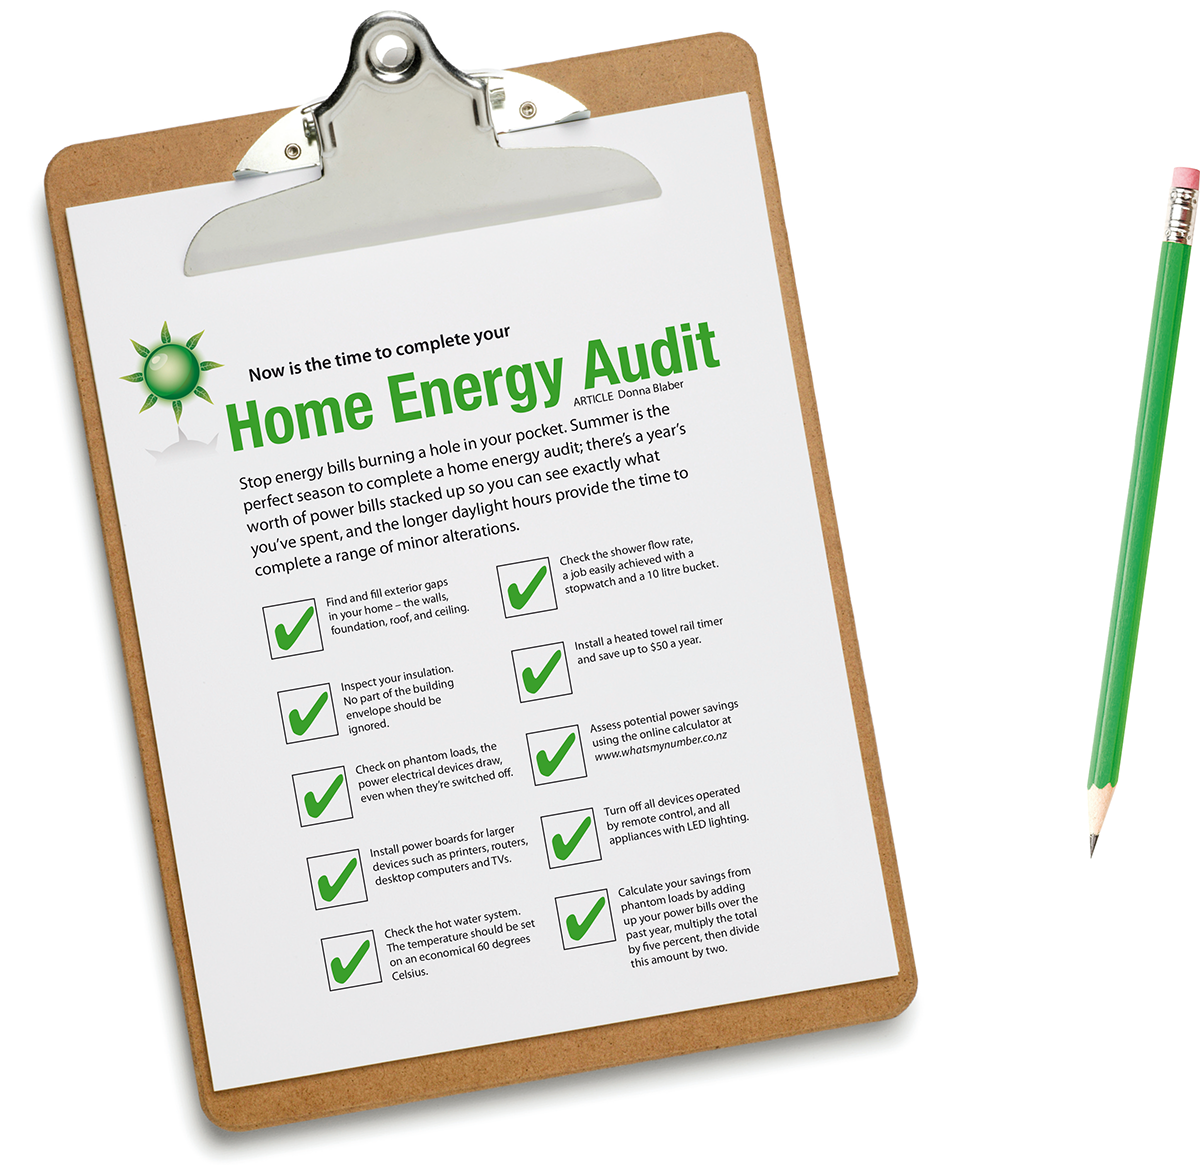 Home Power Articles: From The Magazine - Home Renovation Advice Articles